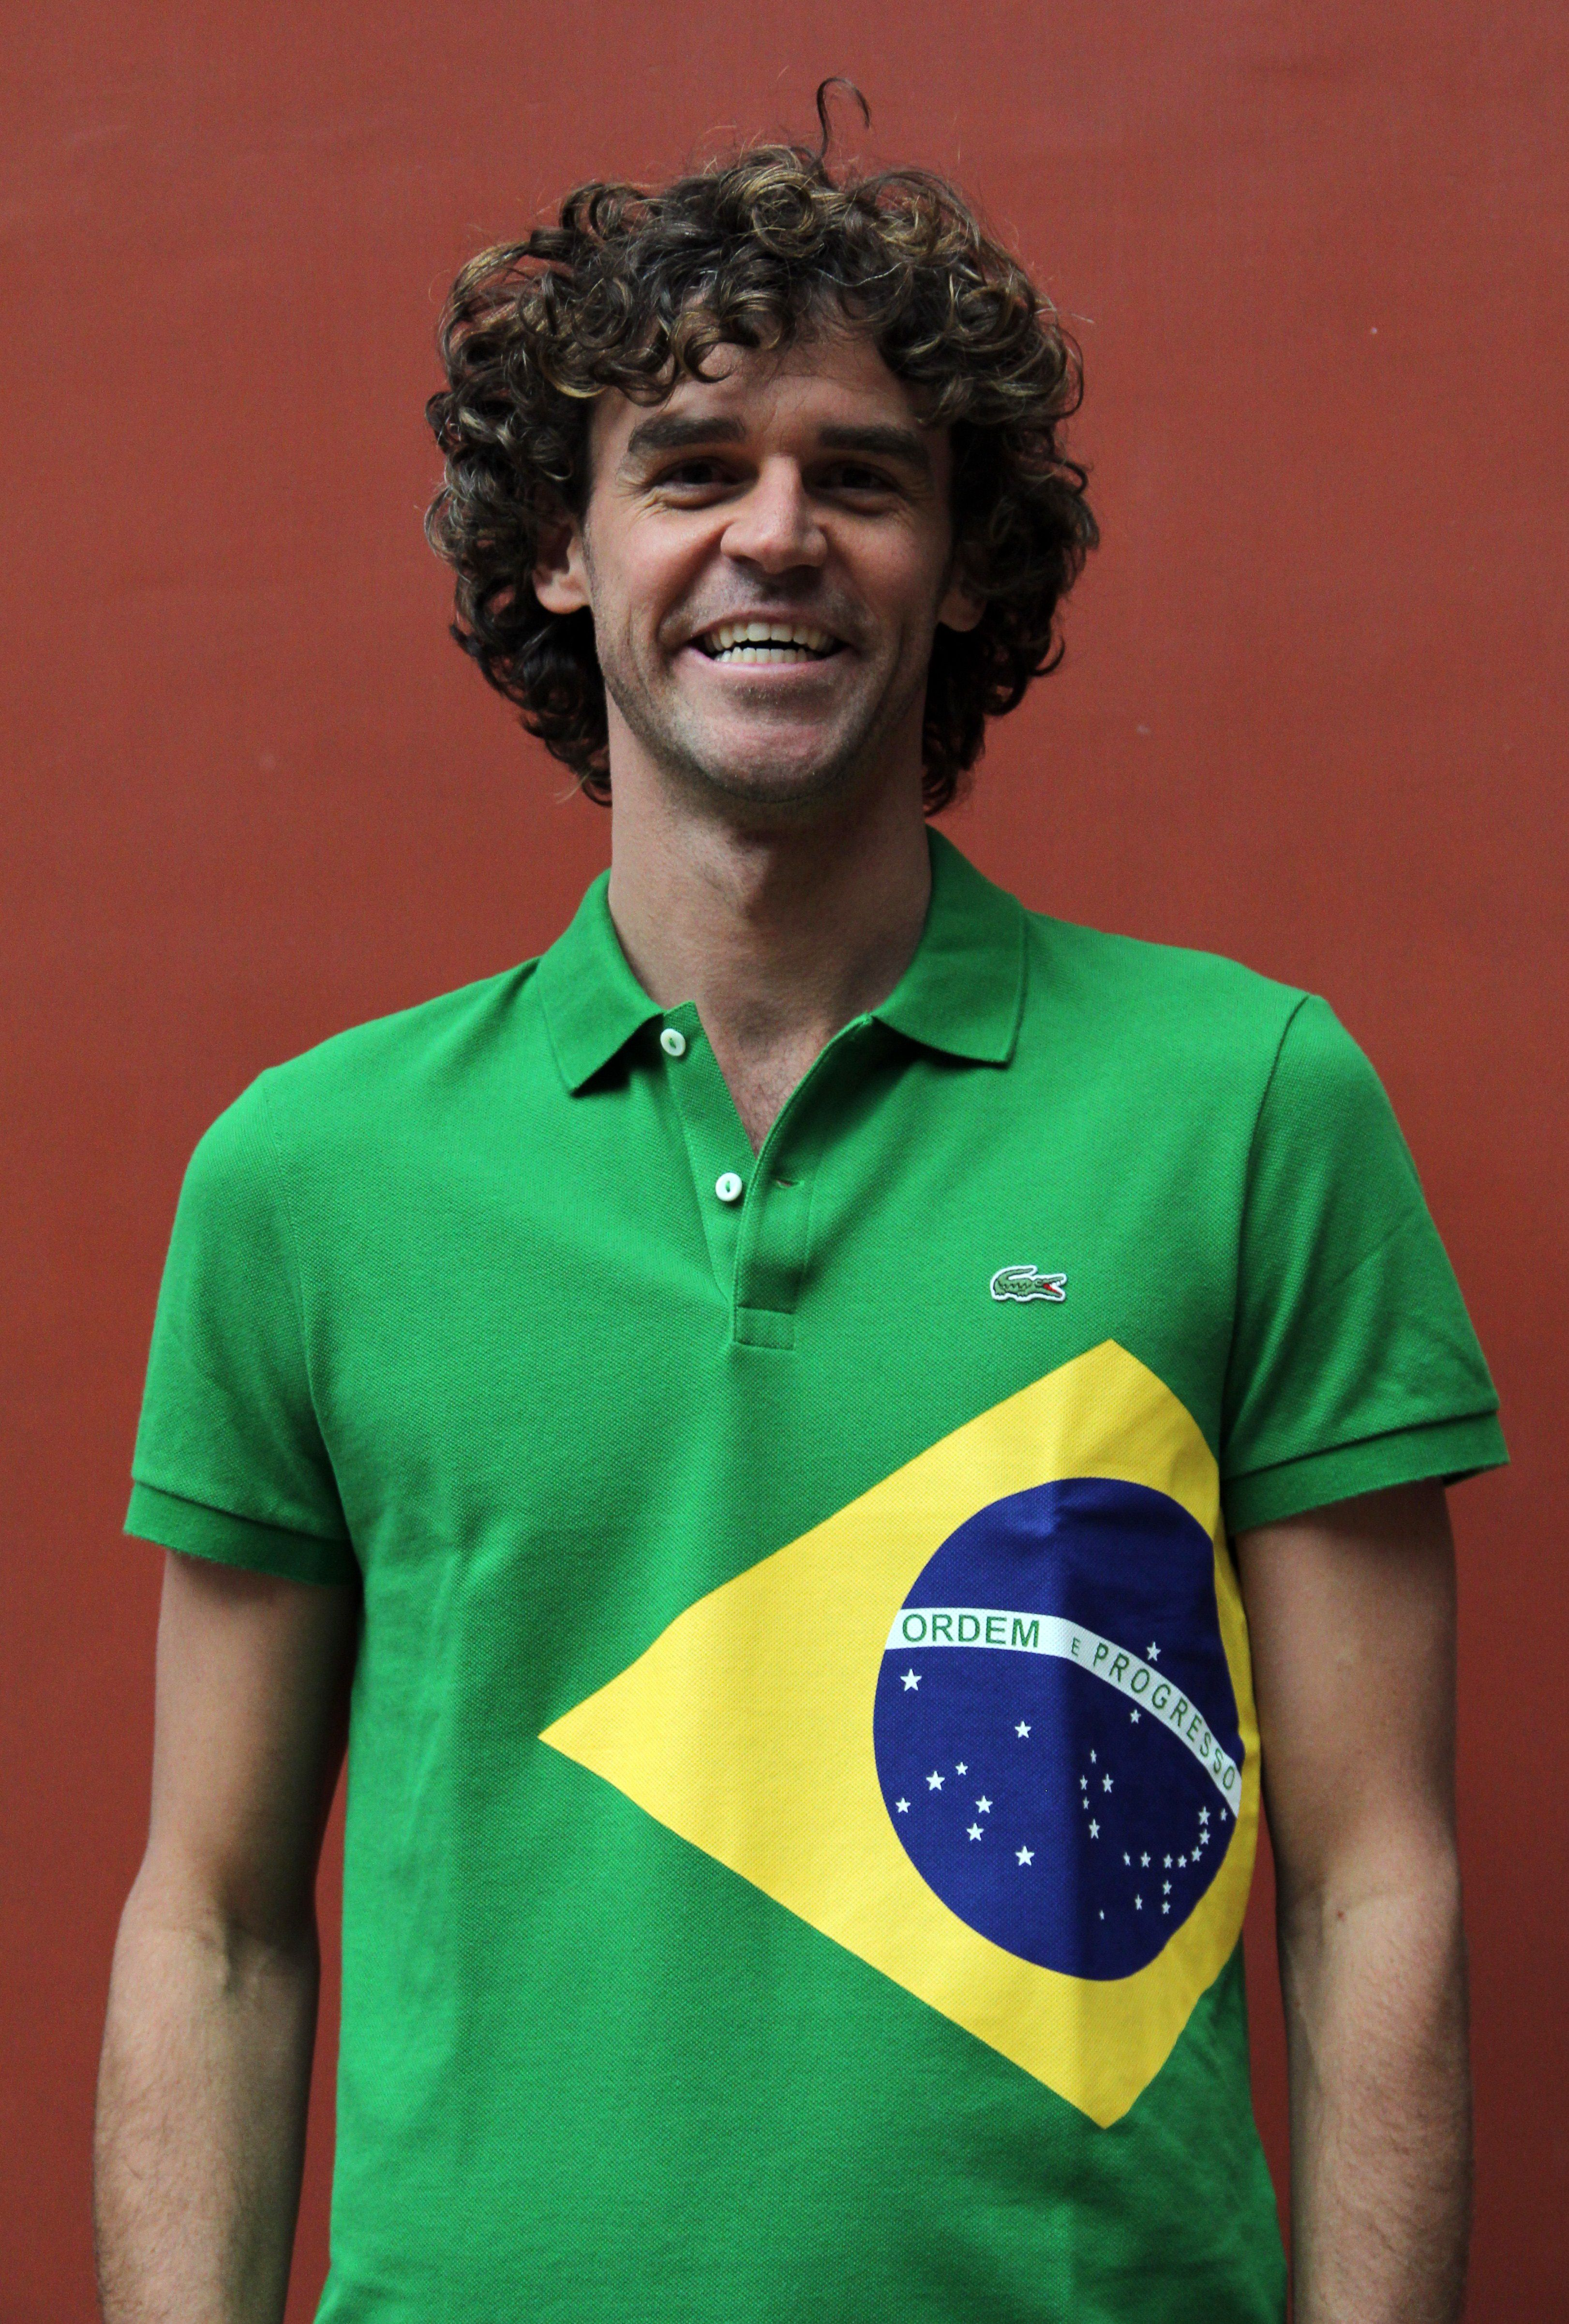 Behind the scenes with tennis legend Gustavo Kuerten and Lacoste